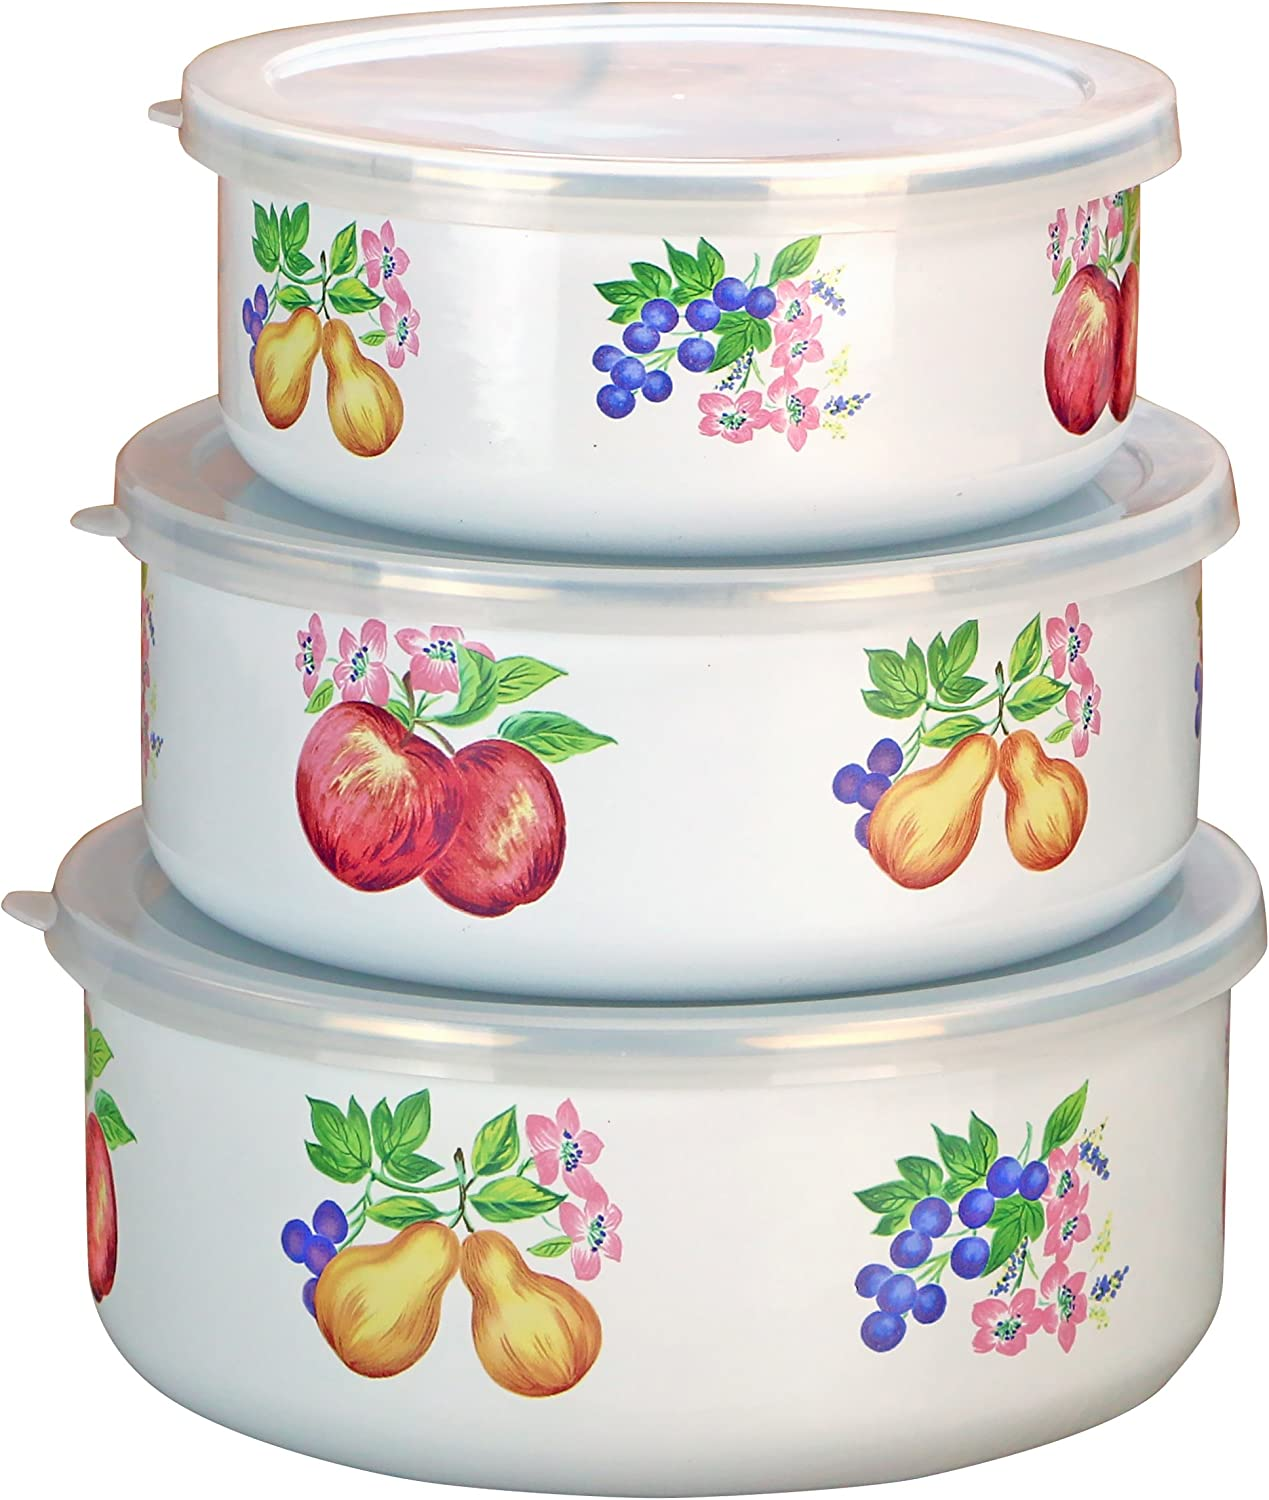 Corelle Coordinates by Reston Lloyd 6-Piece Enamel on Steel Bowl/Storage Set, Chutney